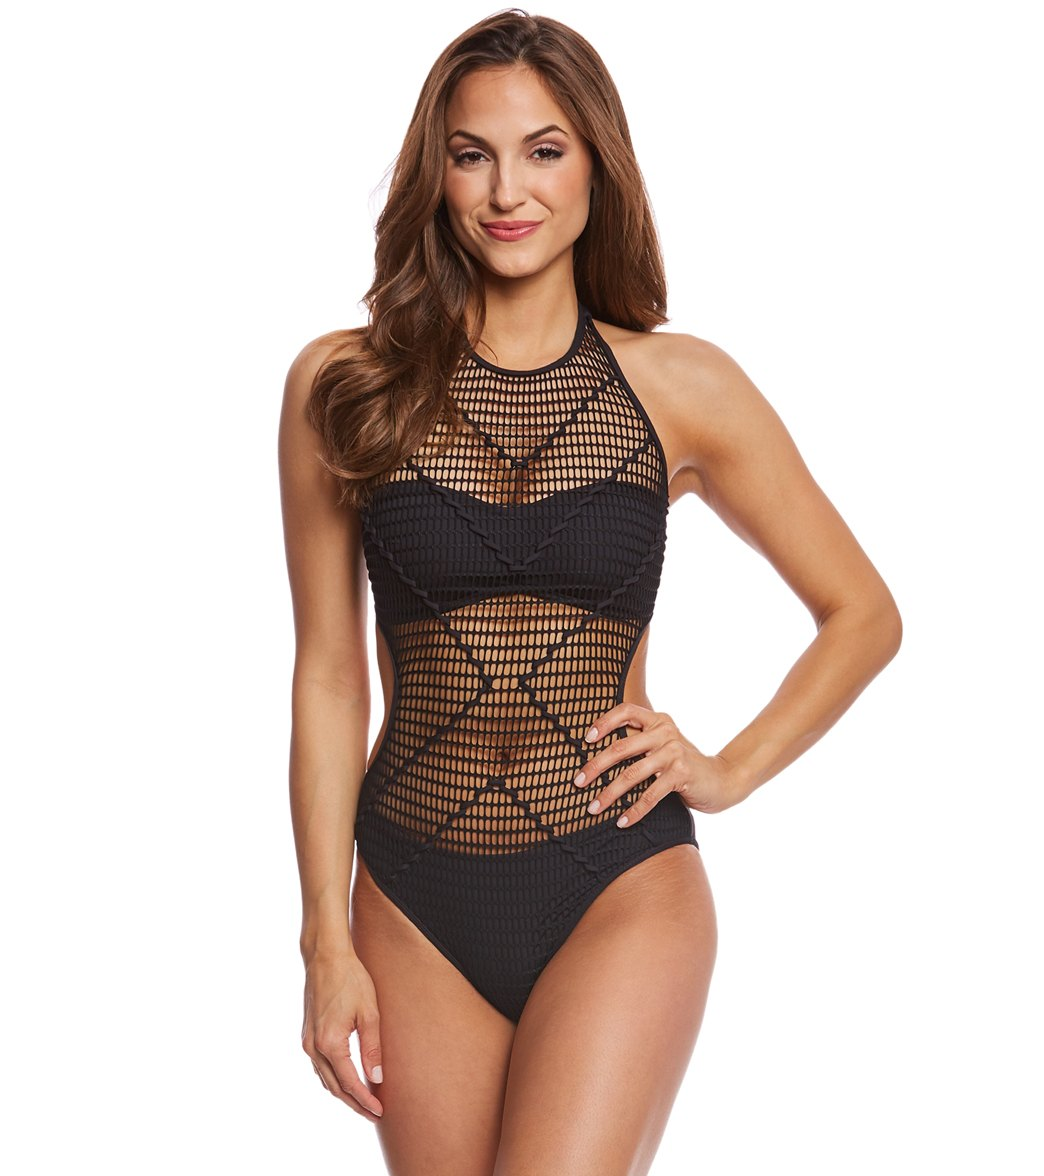 183b59c74a Kenneth Cole Wrapped In Love High Neck One Piece Swimsuit at SwimOutlet.com  - Free Shipping